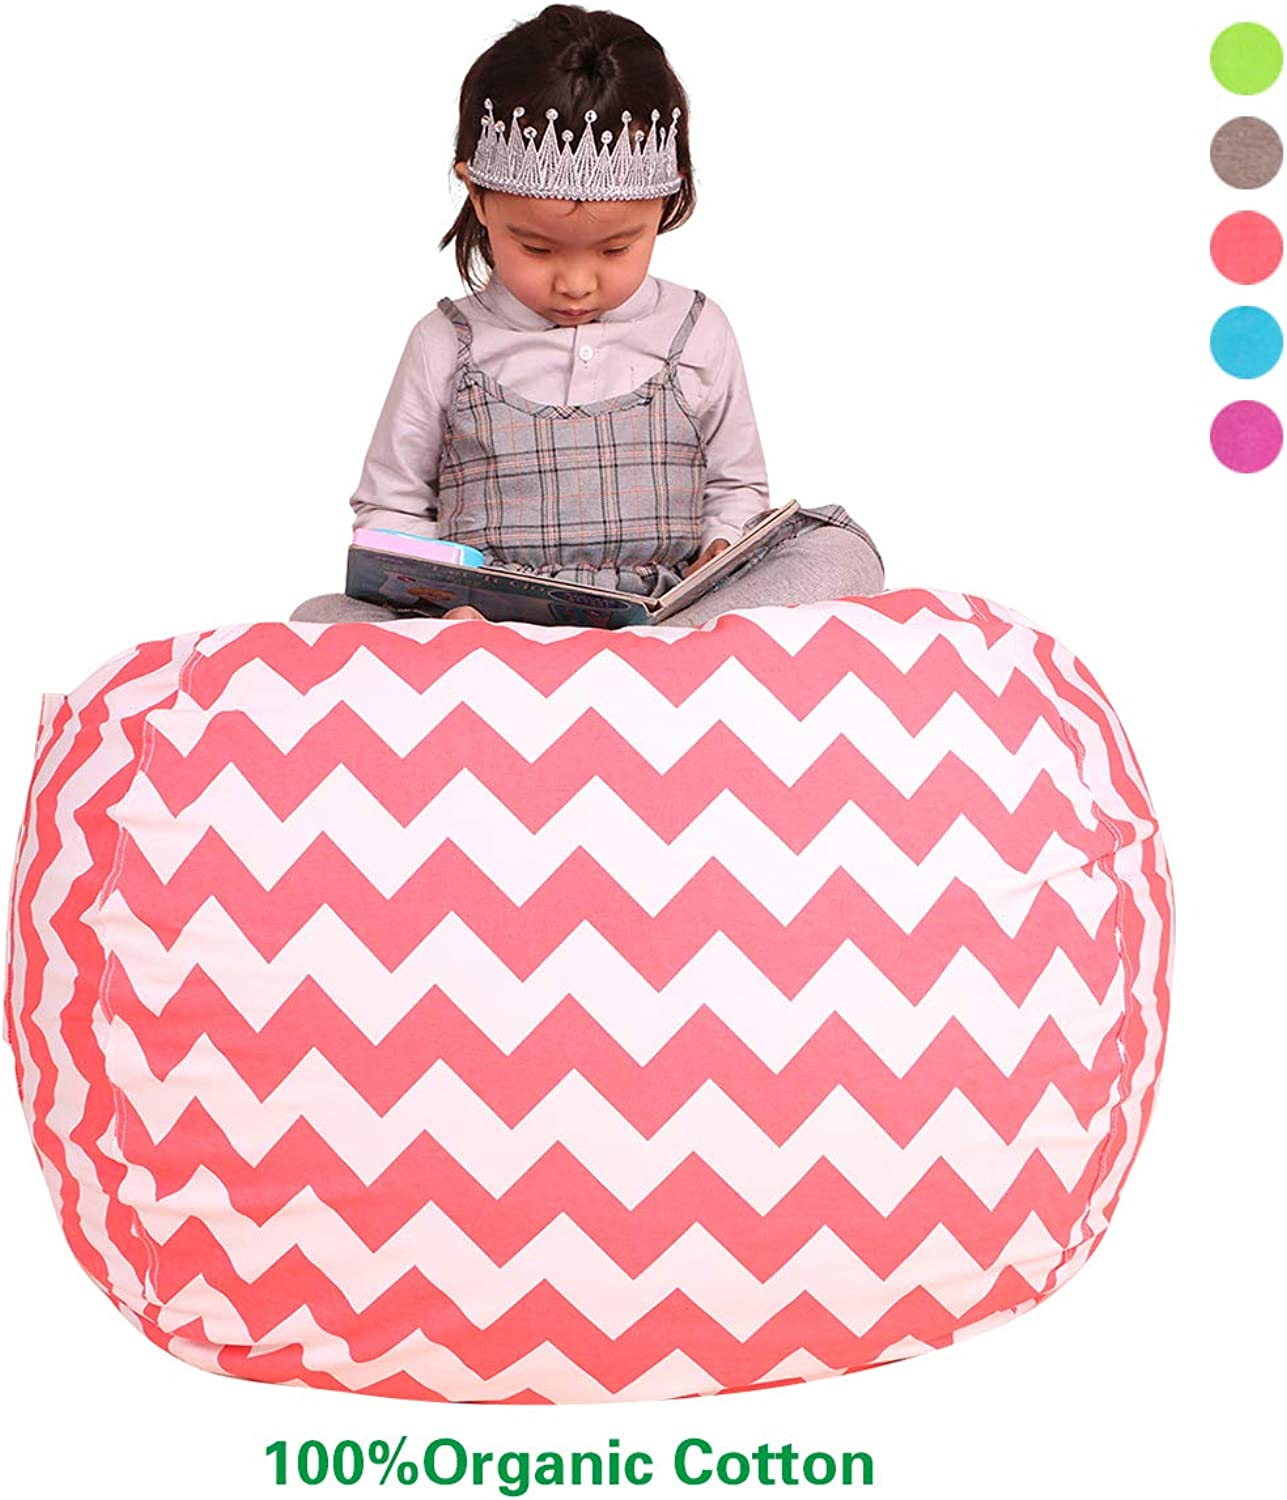 Great Eagle Stuffed Animal Storage Bean Bag Chair Cover Large 30x30 Inches 100% Organic Cotton Thick Canvas  for Kids, Toddlers and Teens(Boys or Girls) Toy Storage Bag or Organizer Chevron Pink